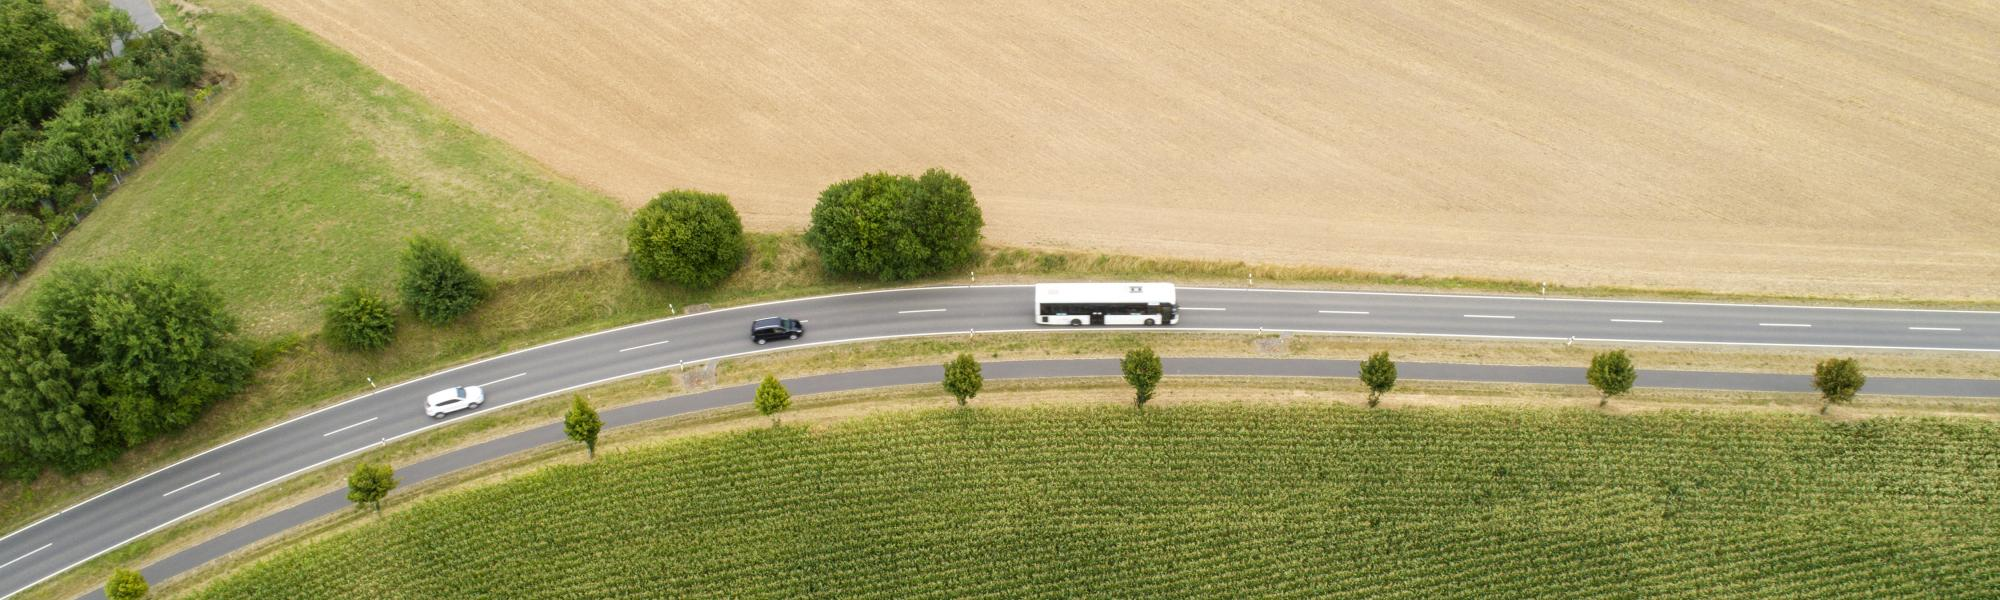 aerial view of a white coach driving on the road